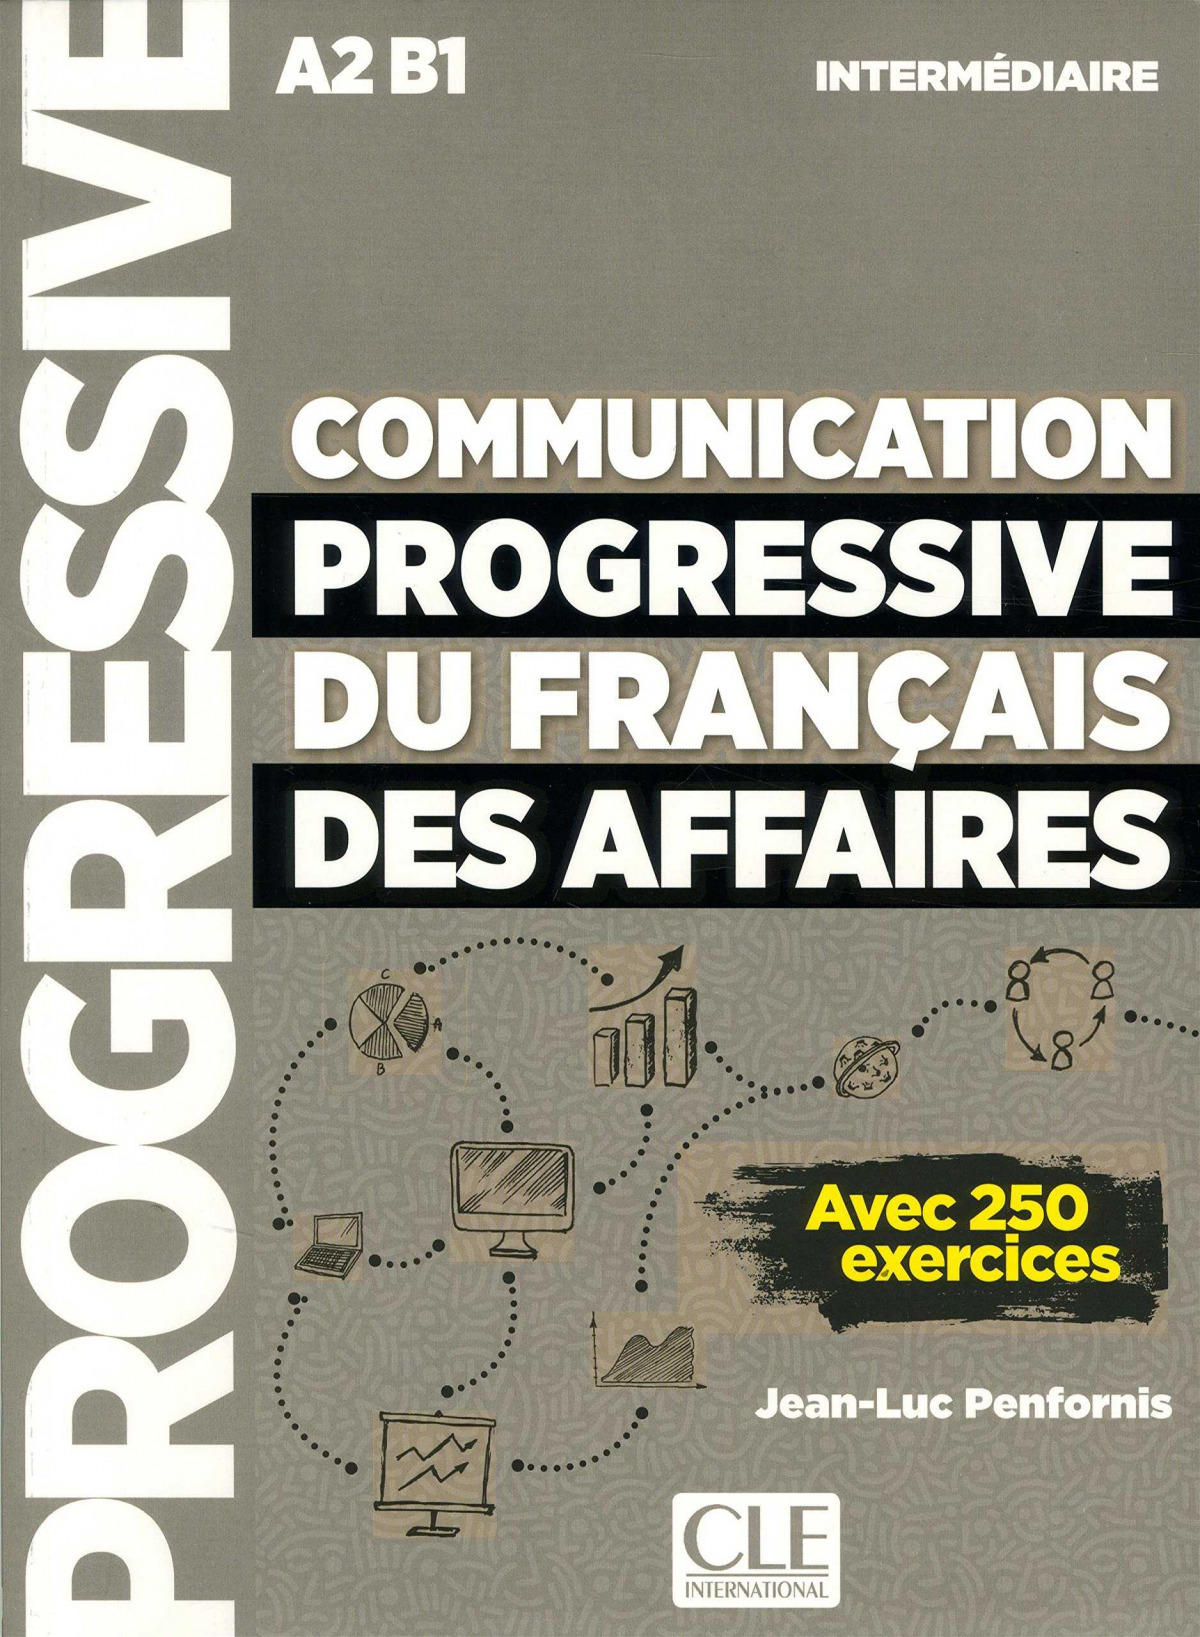 COMMUNICATION PROGRESSIVE DU FRANCAIS DES AFFAIRE